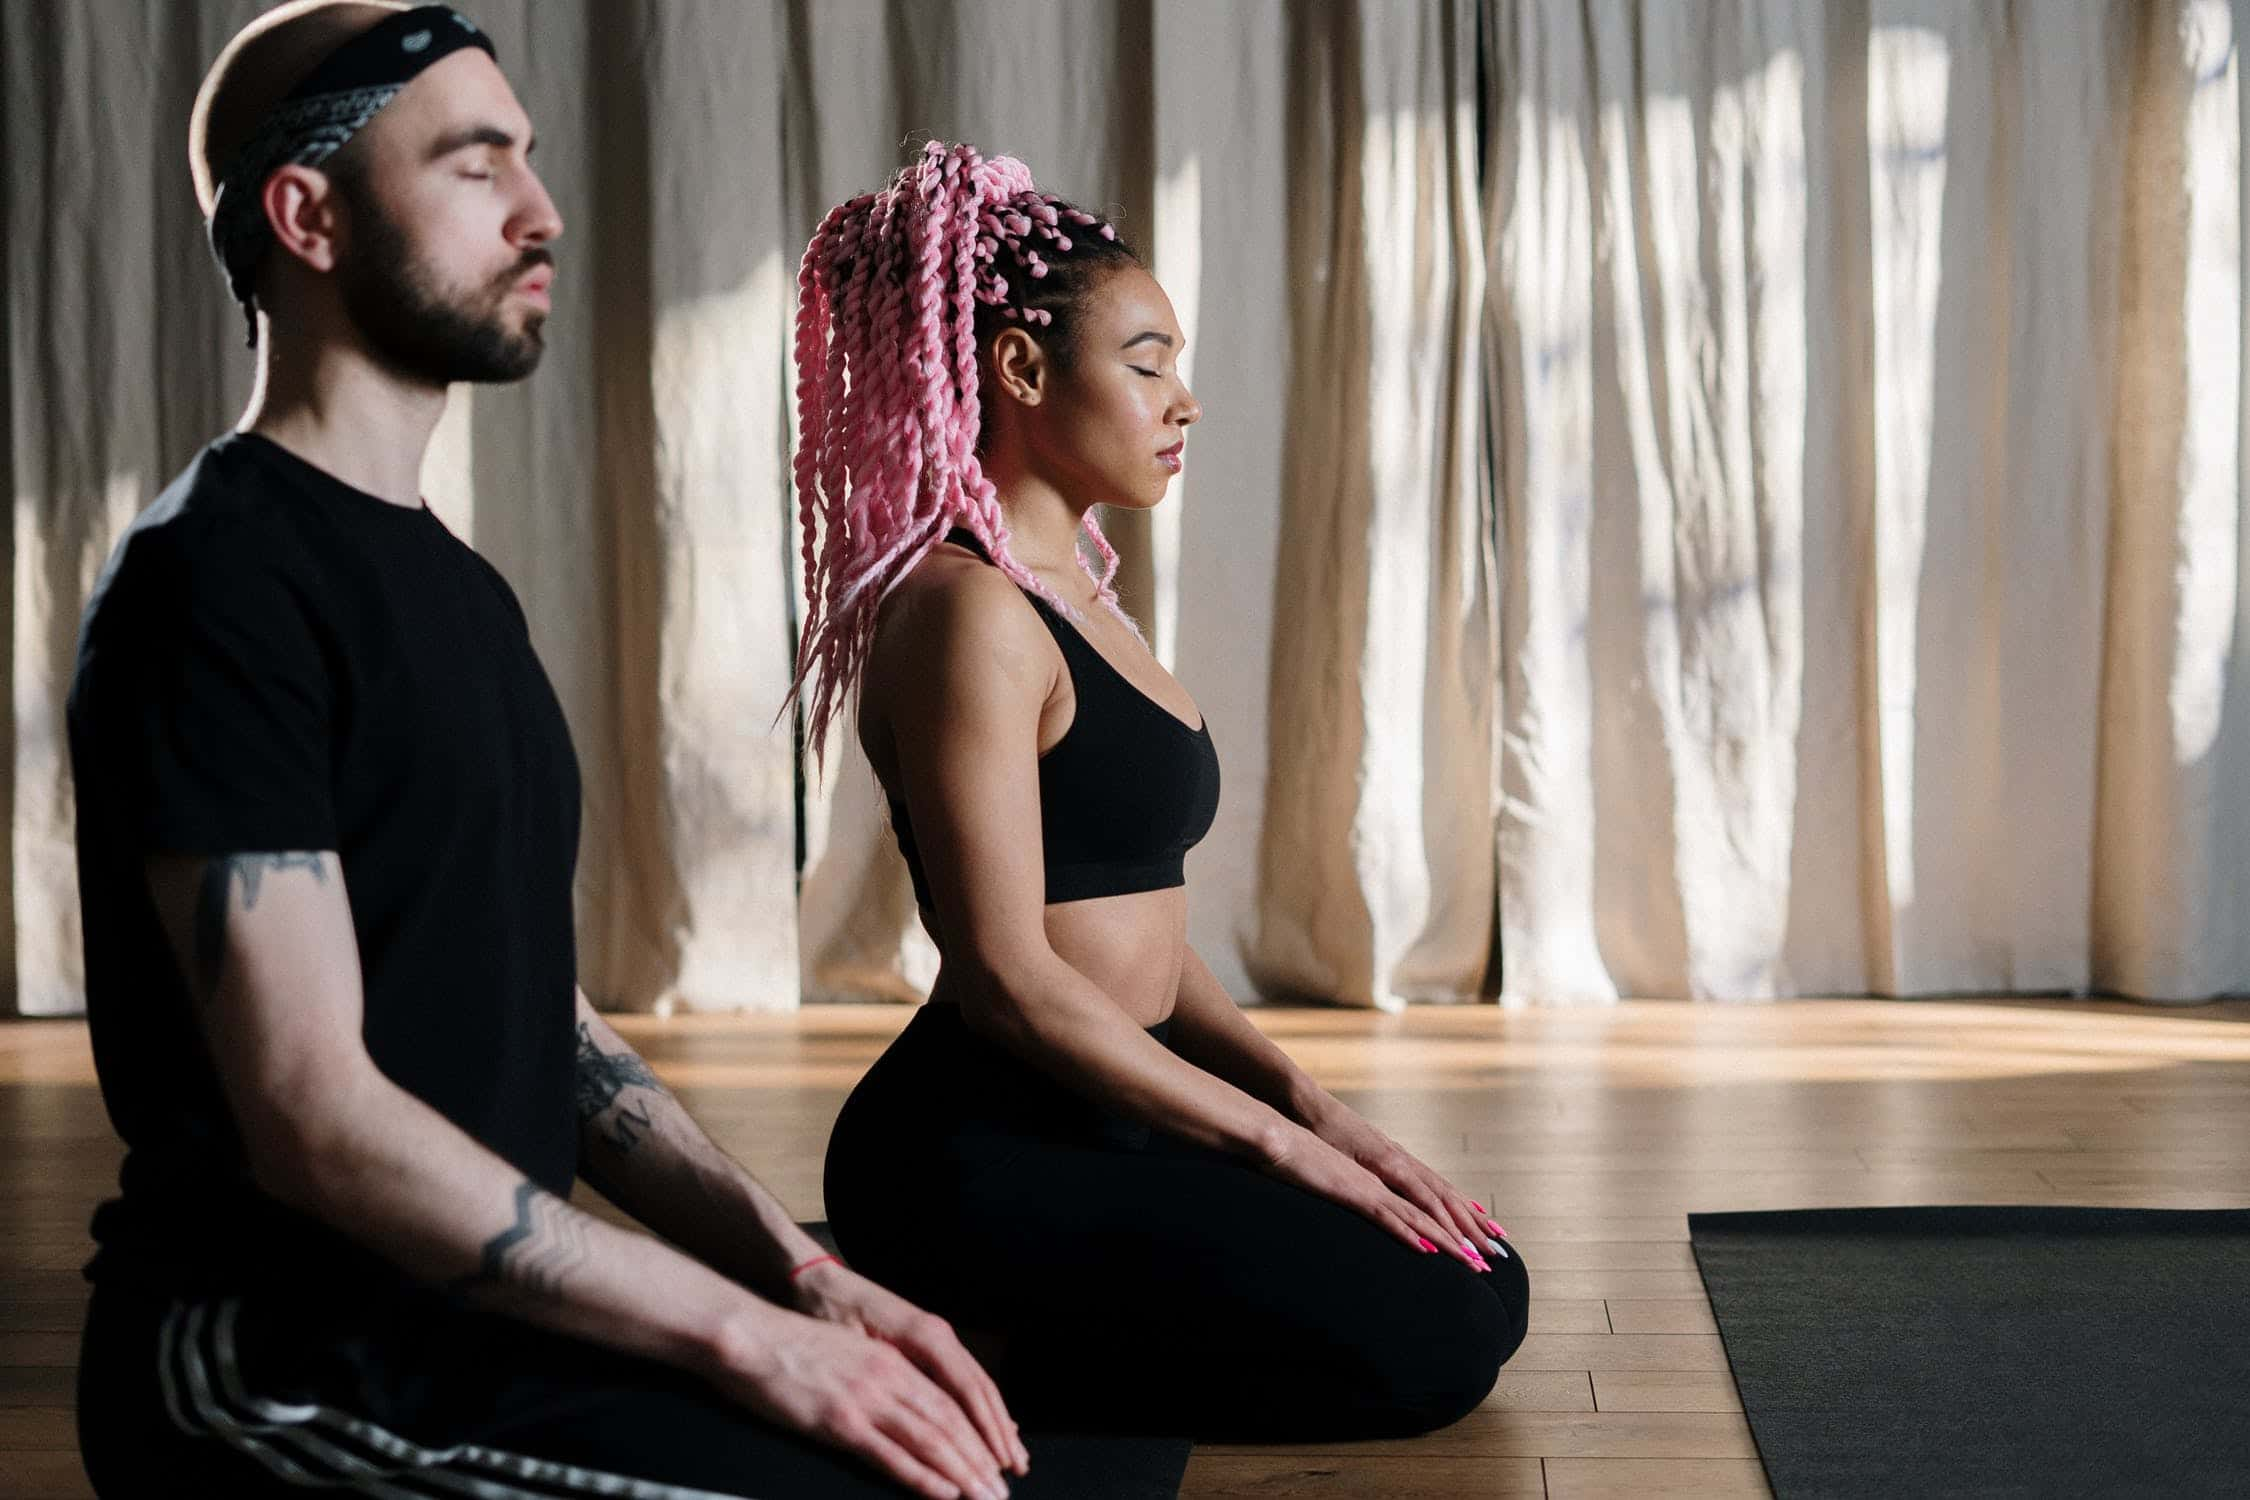 A man and a woman grounding before their yoga practice